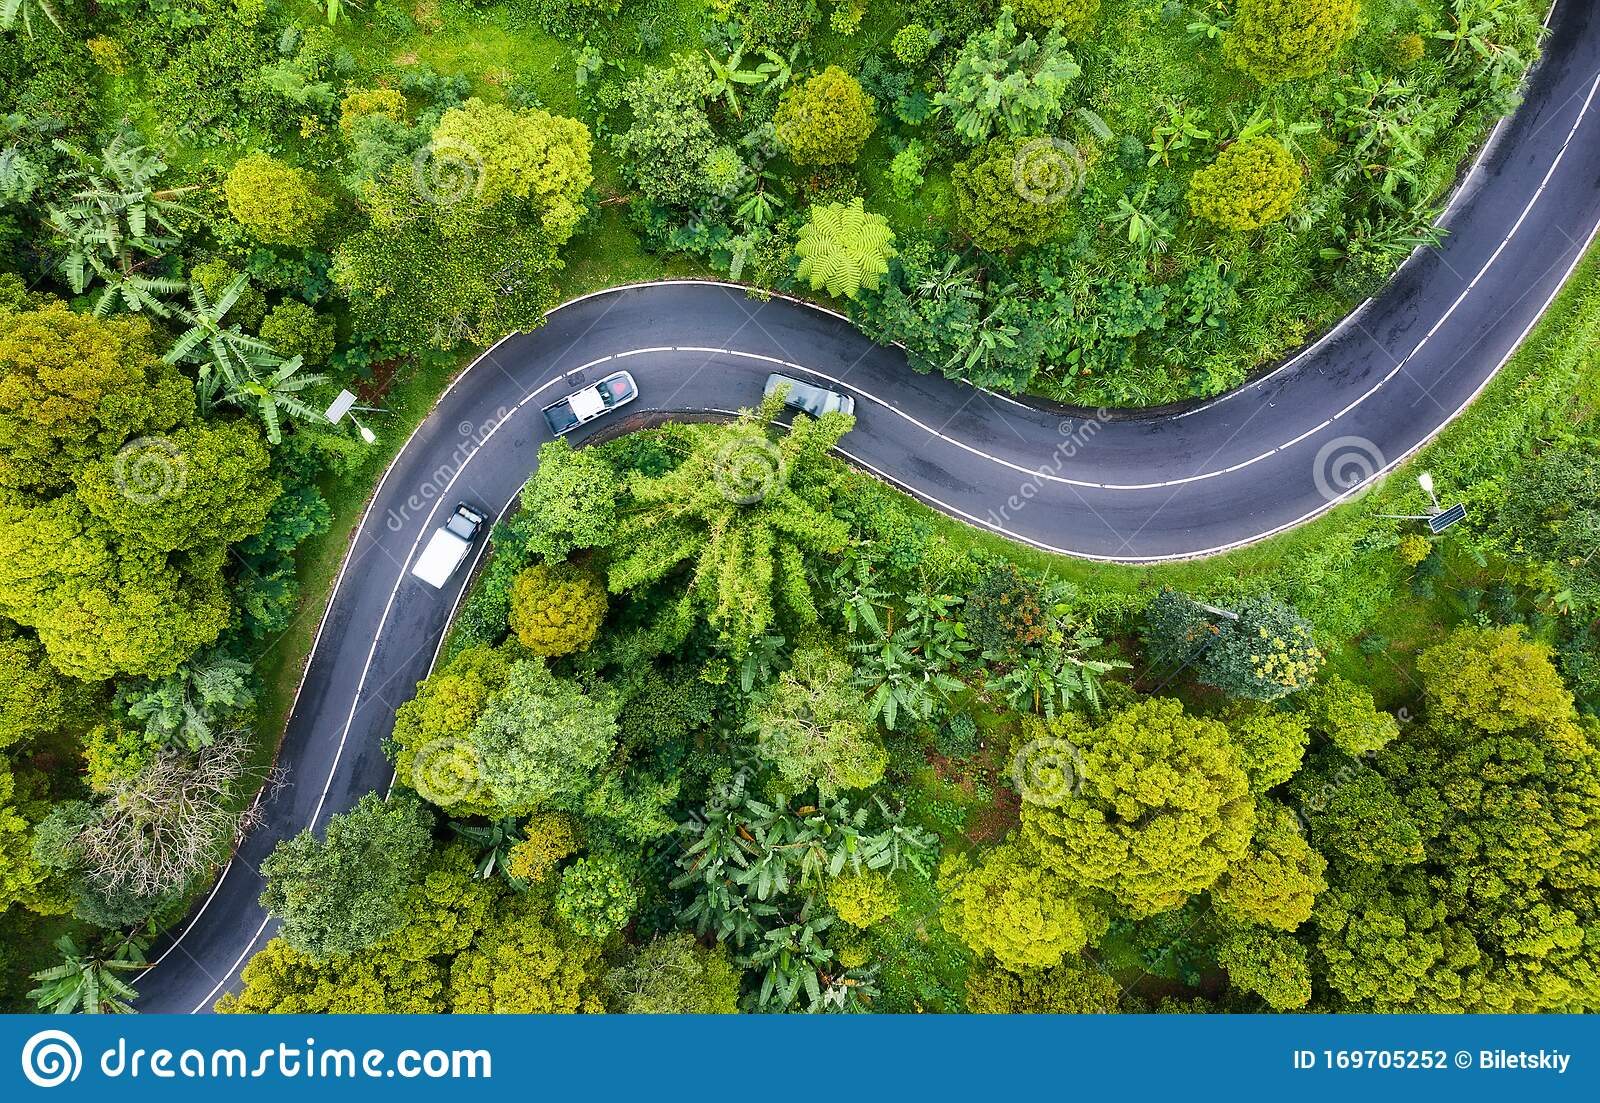 Aerial View On Road In The Forest Highway Throu The Forest View From A Drone Natural Landscape In Summer Time From Air Stock Photo Image Of Asphalt Drive 169705252